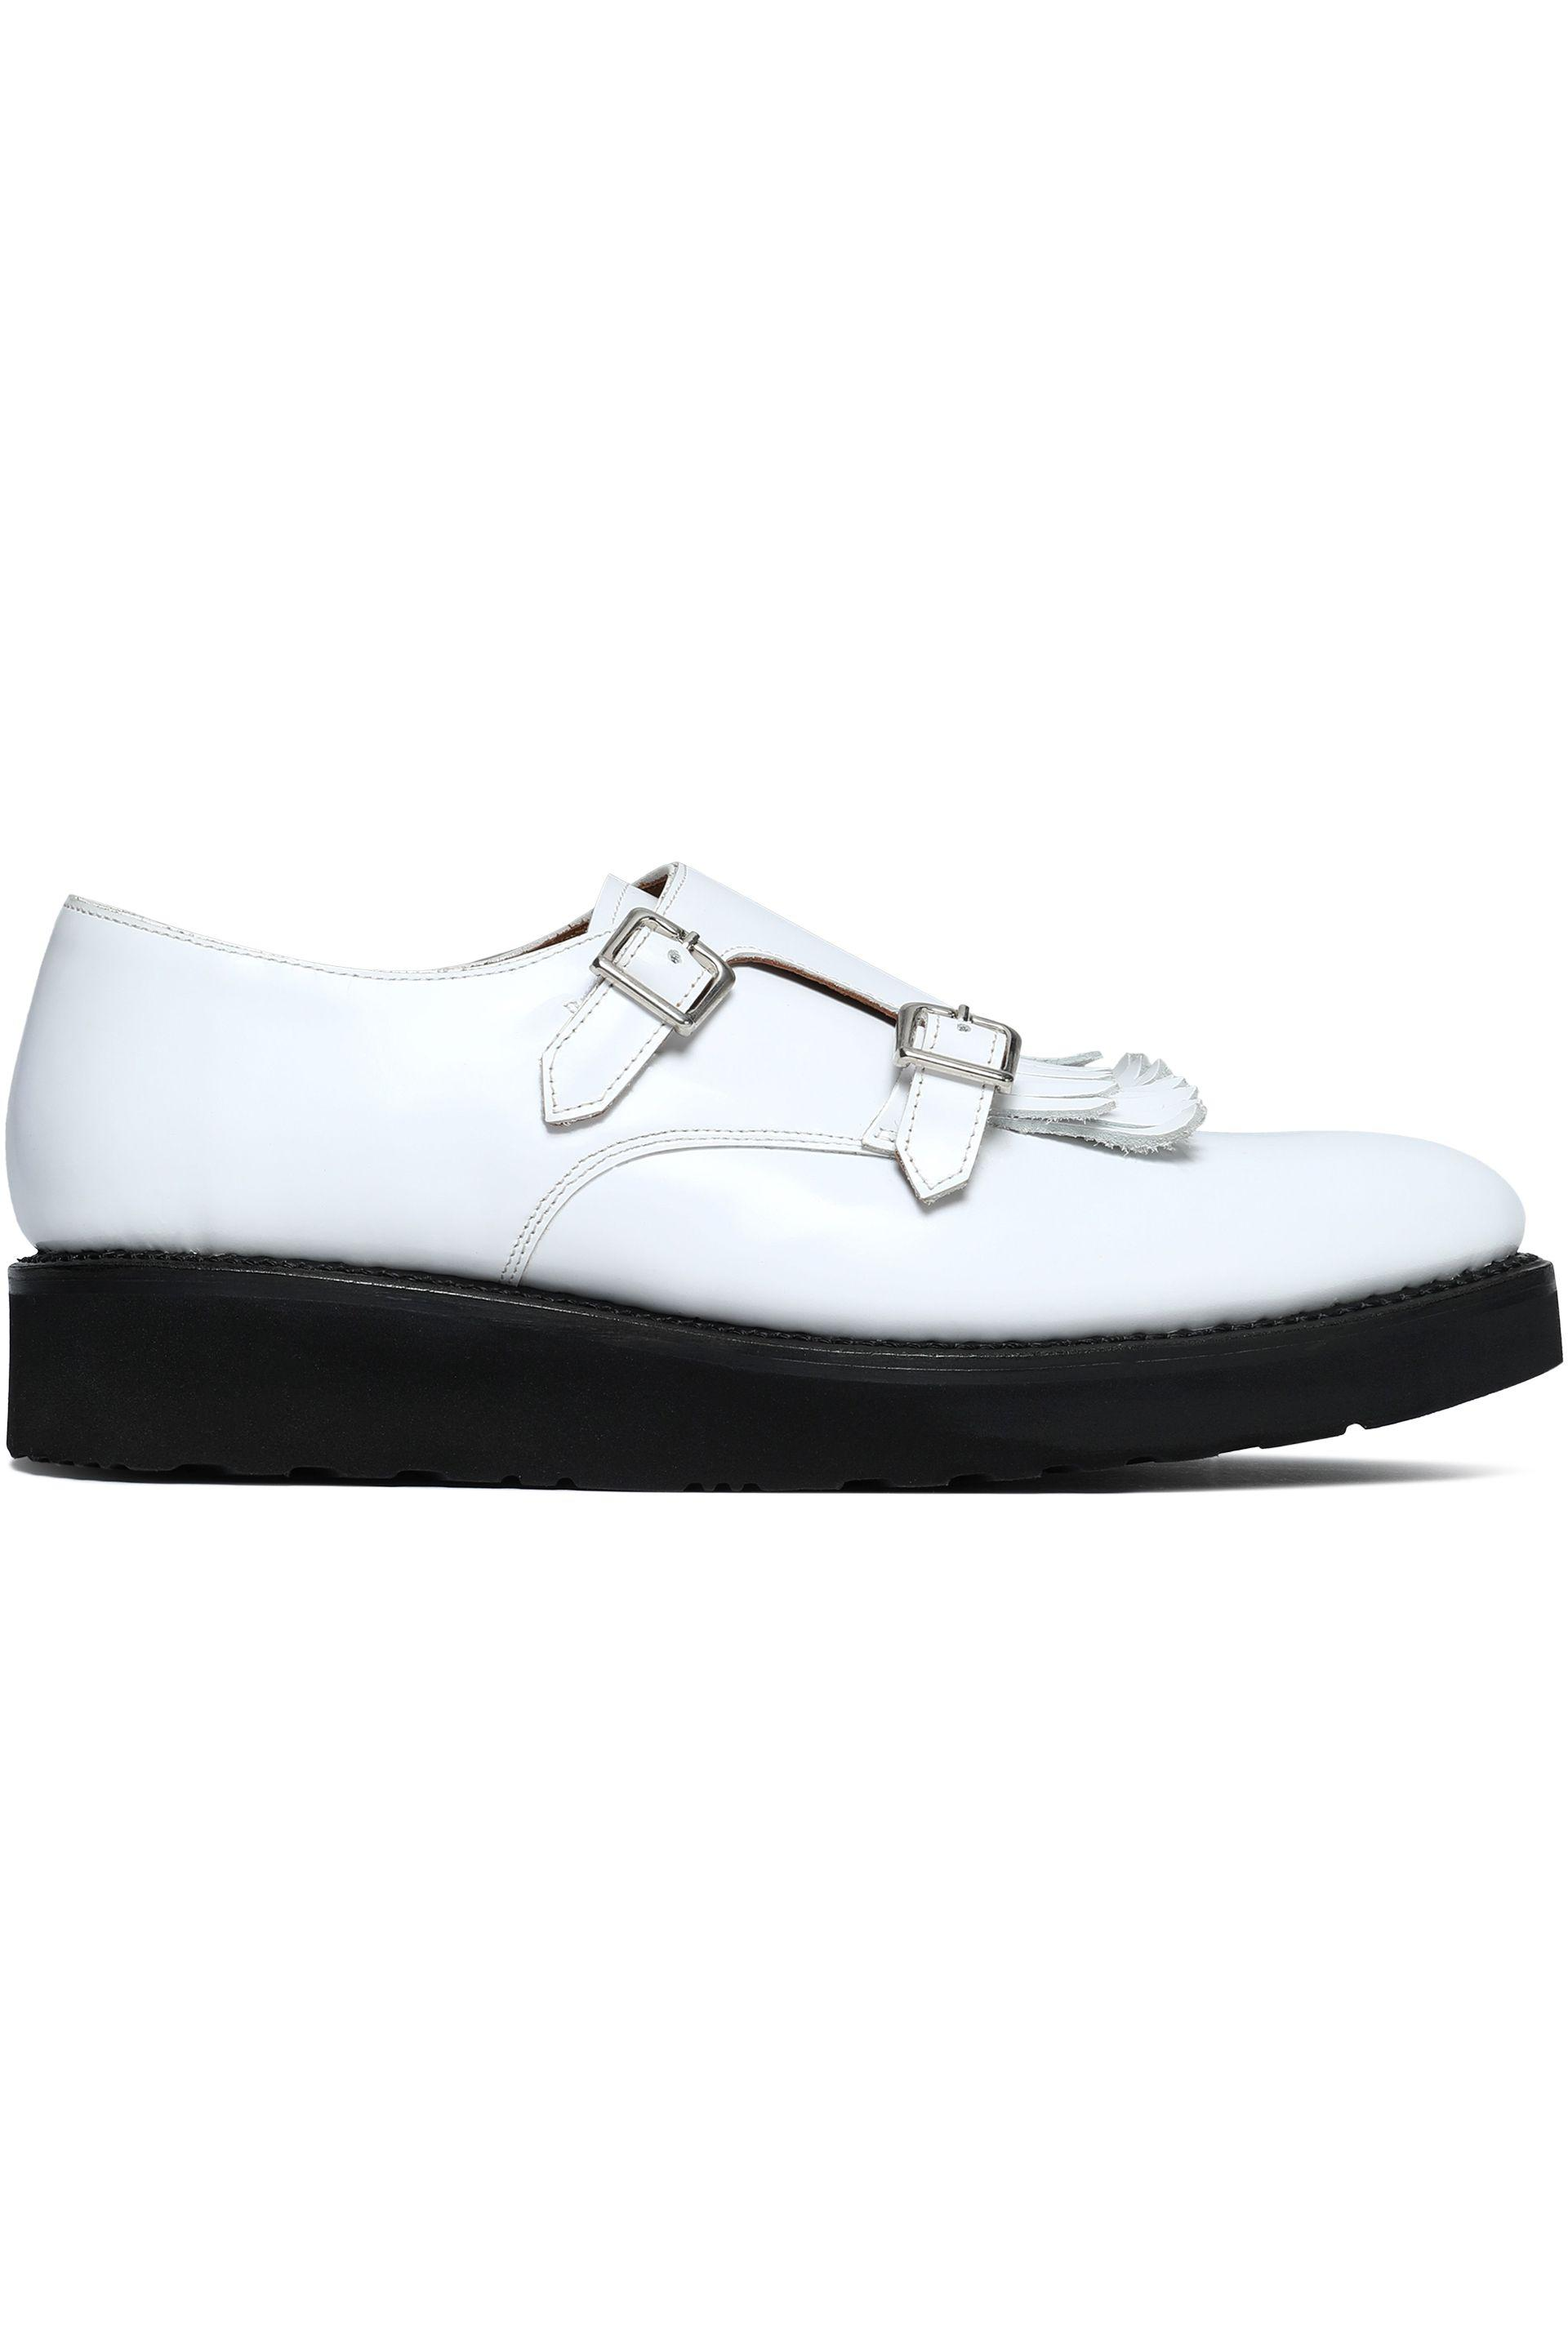 1670eca0fbf Grenson Buckled Fringed Leather Loafers in White - Lyst